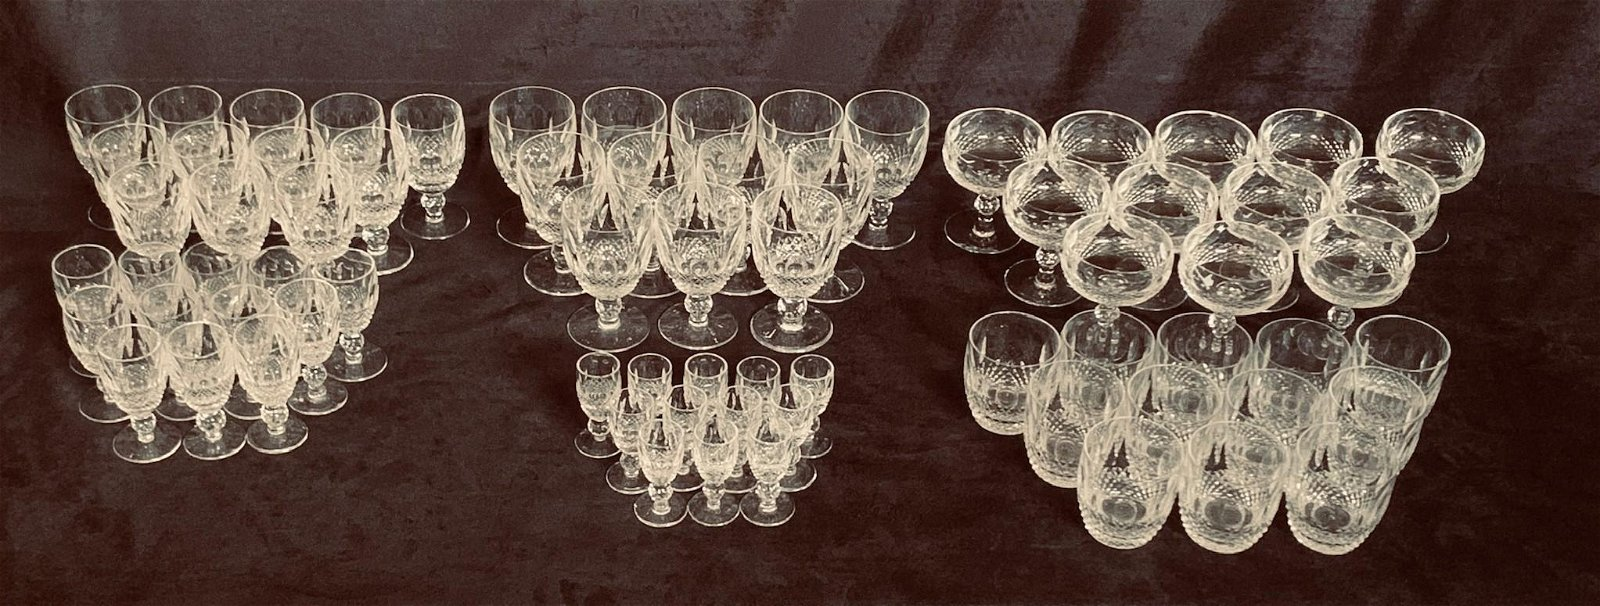 Waterford Colleen Crystal Glasses 72 pcs